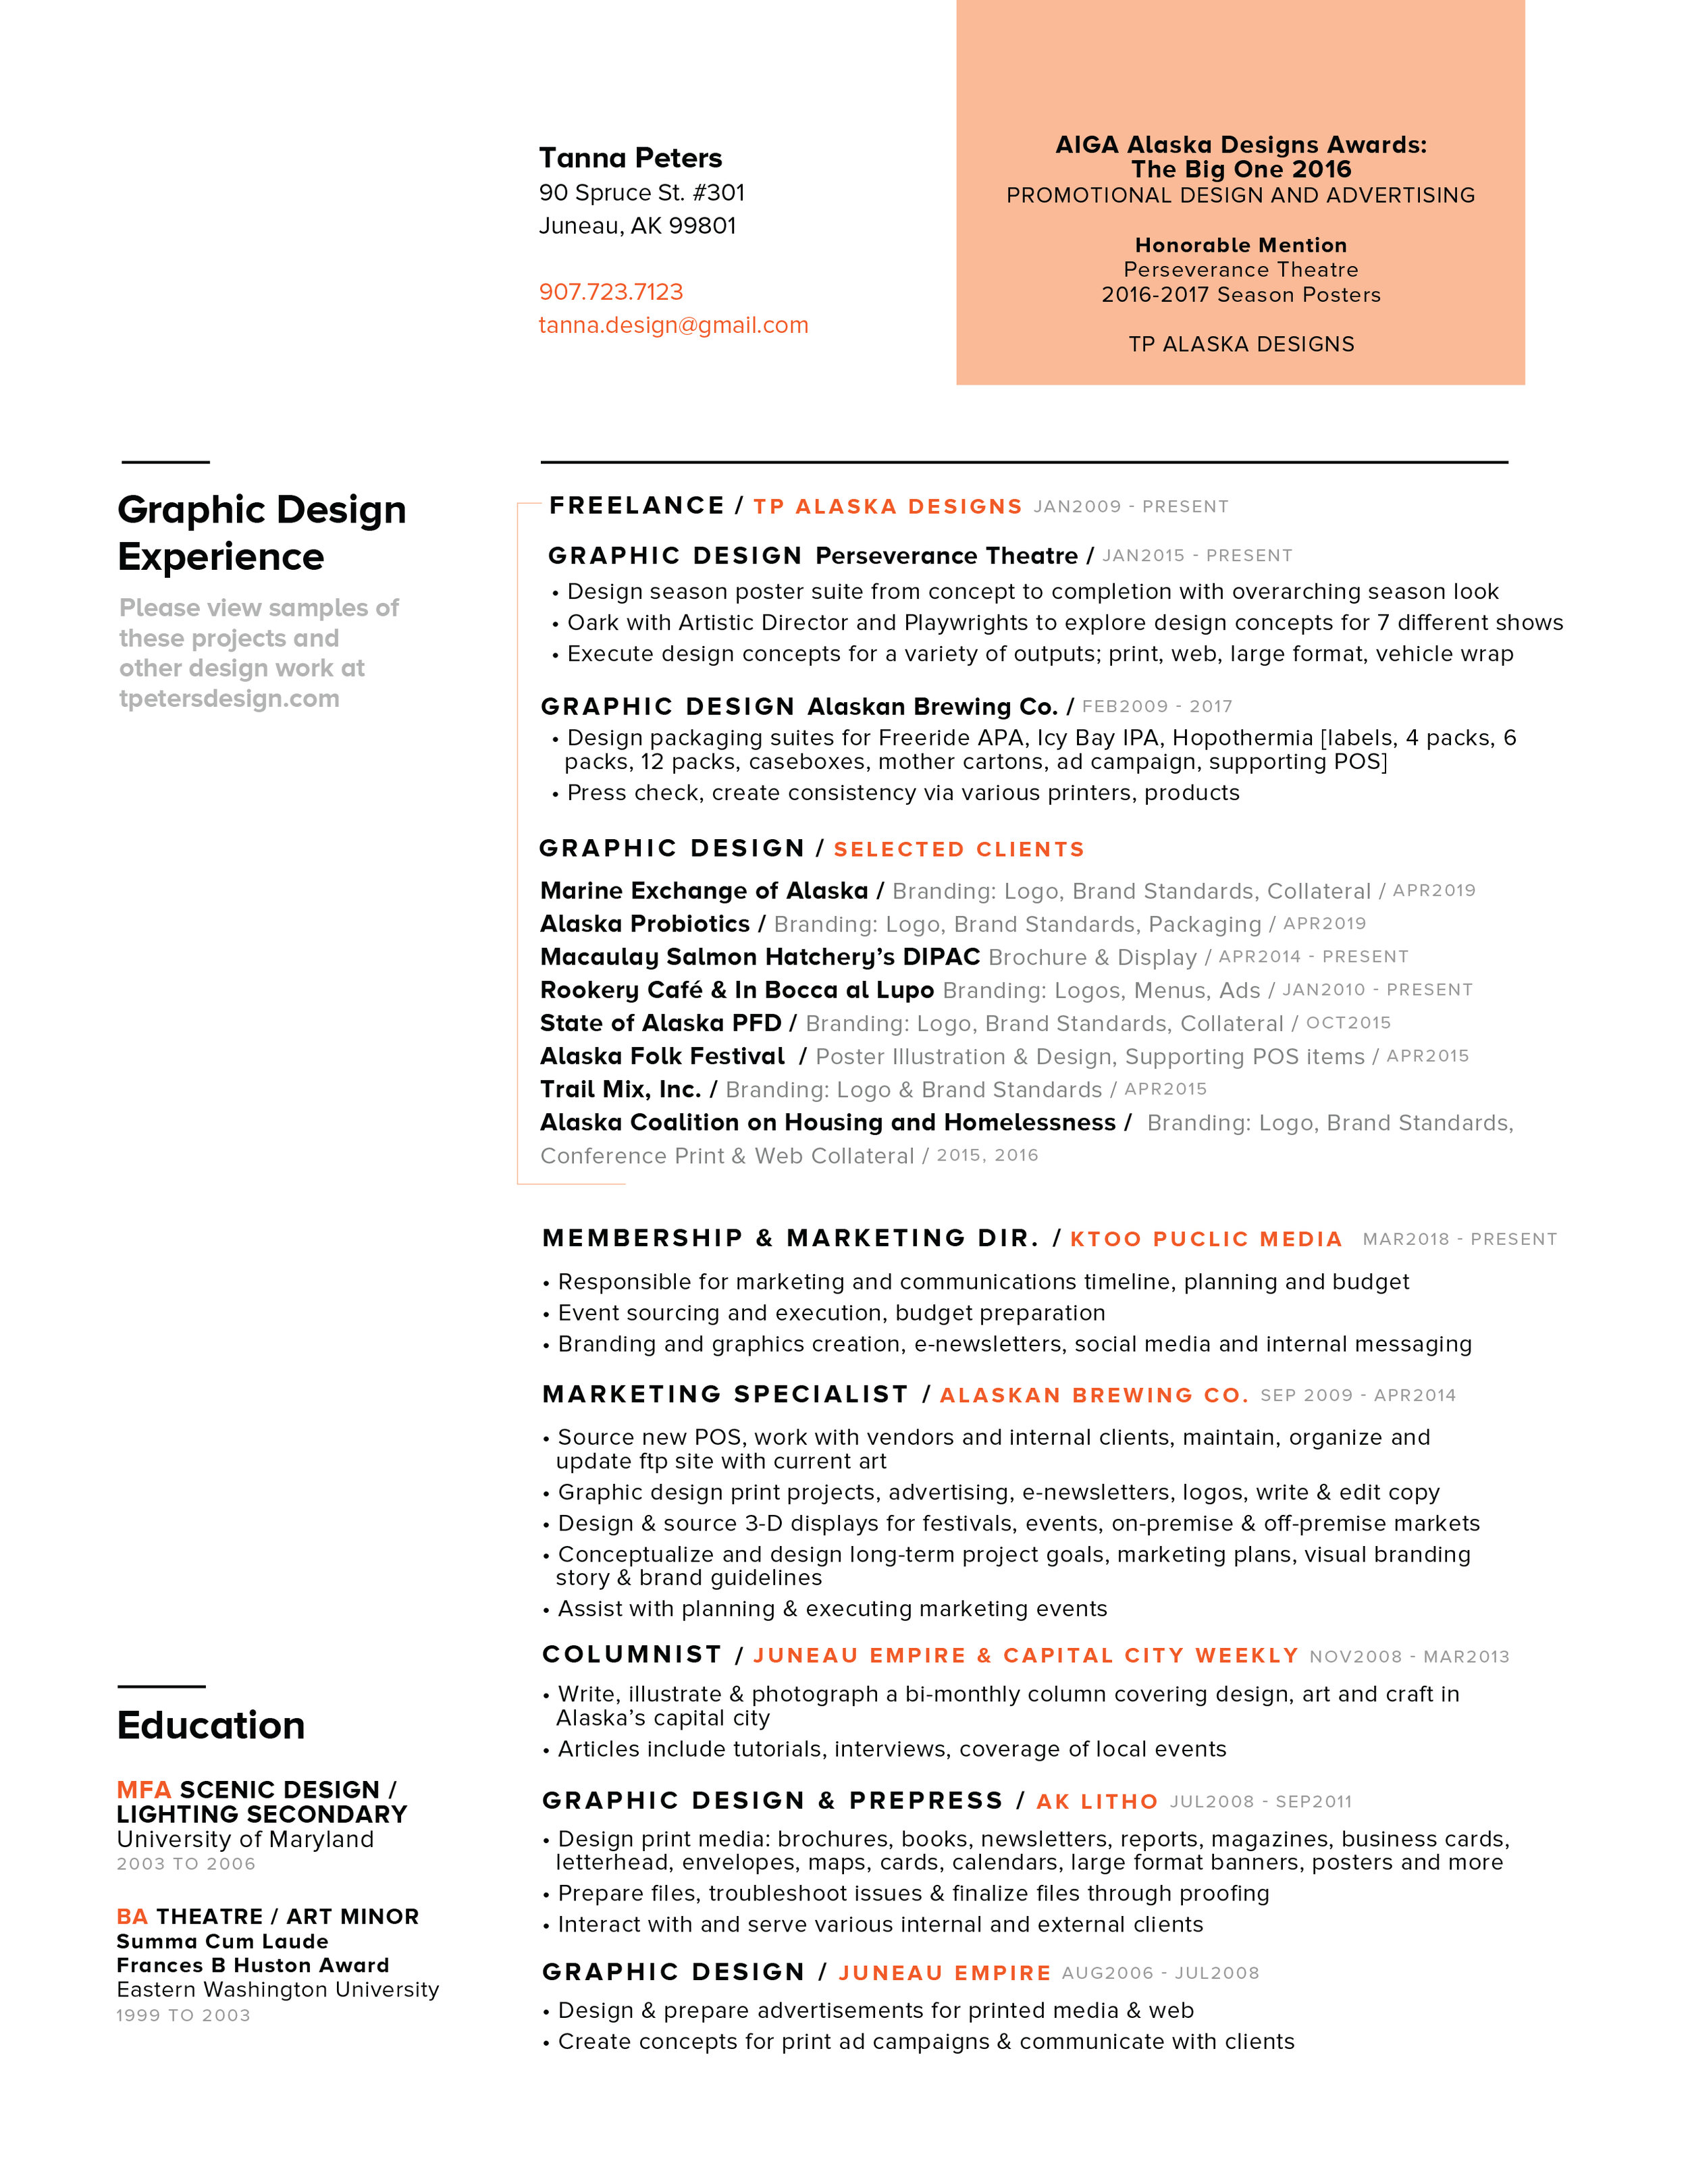 Tanna Peters_Resume_Artboard 1 copy.jpg